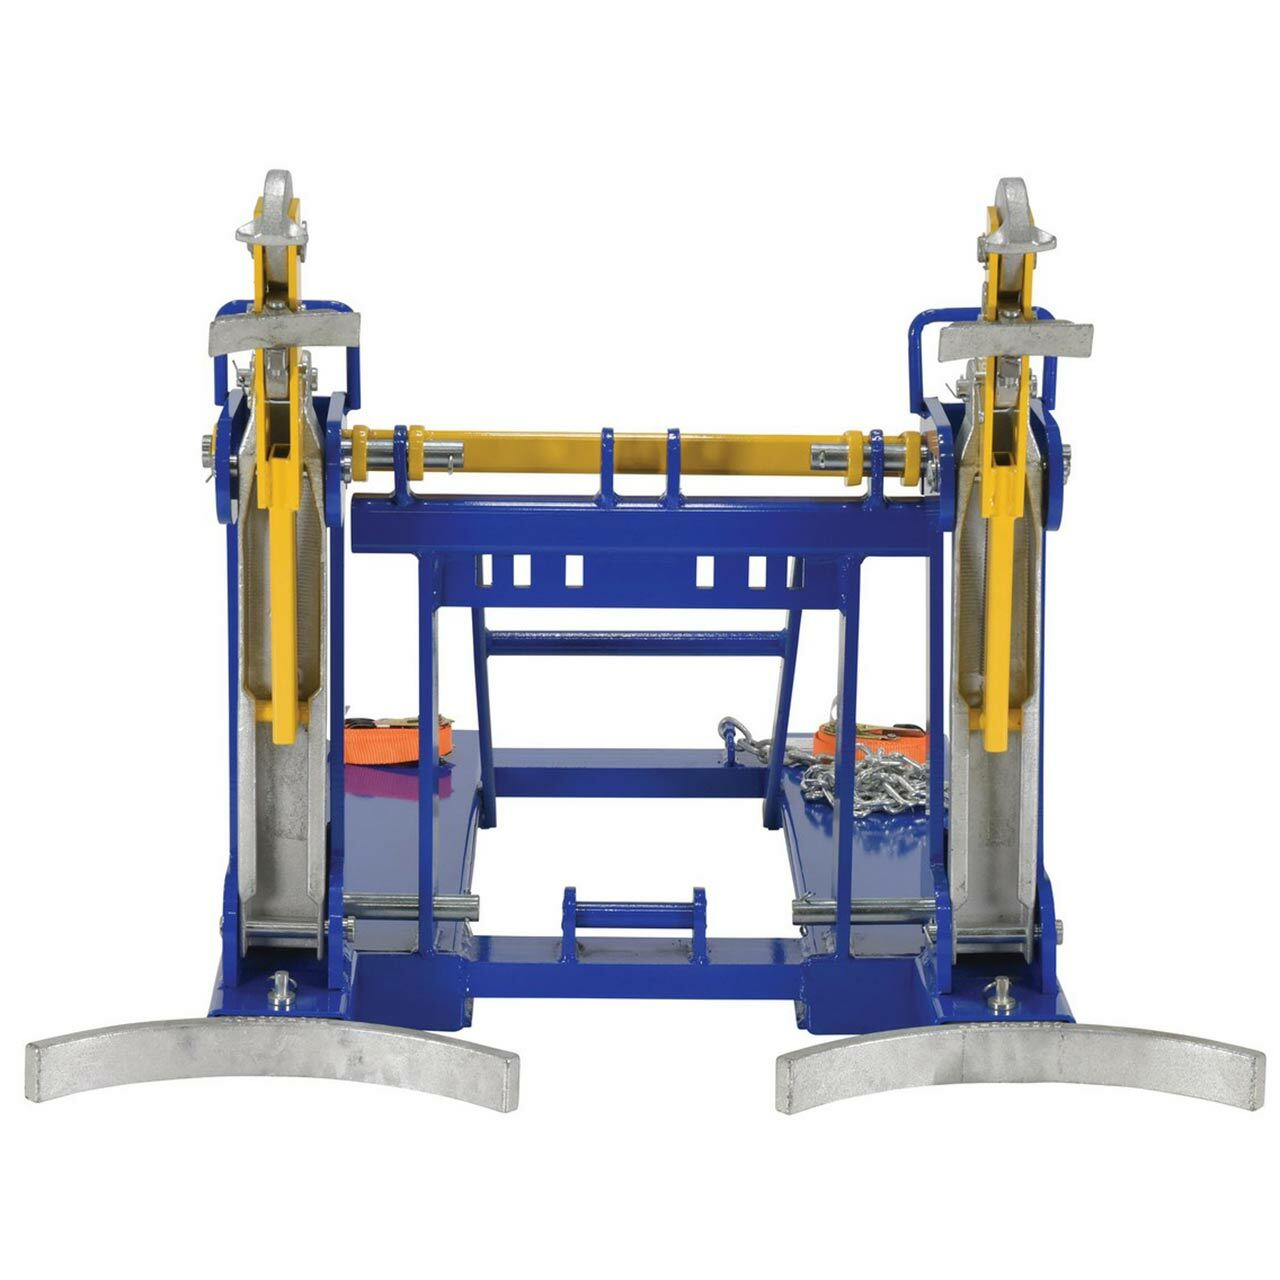 Automatic Drum Lifter Front View